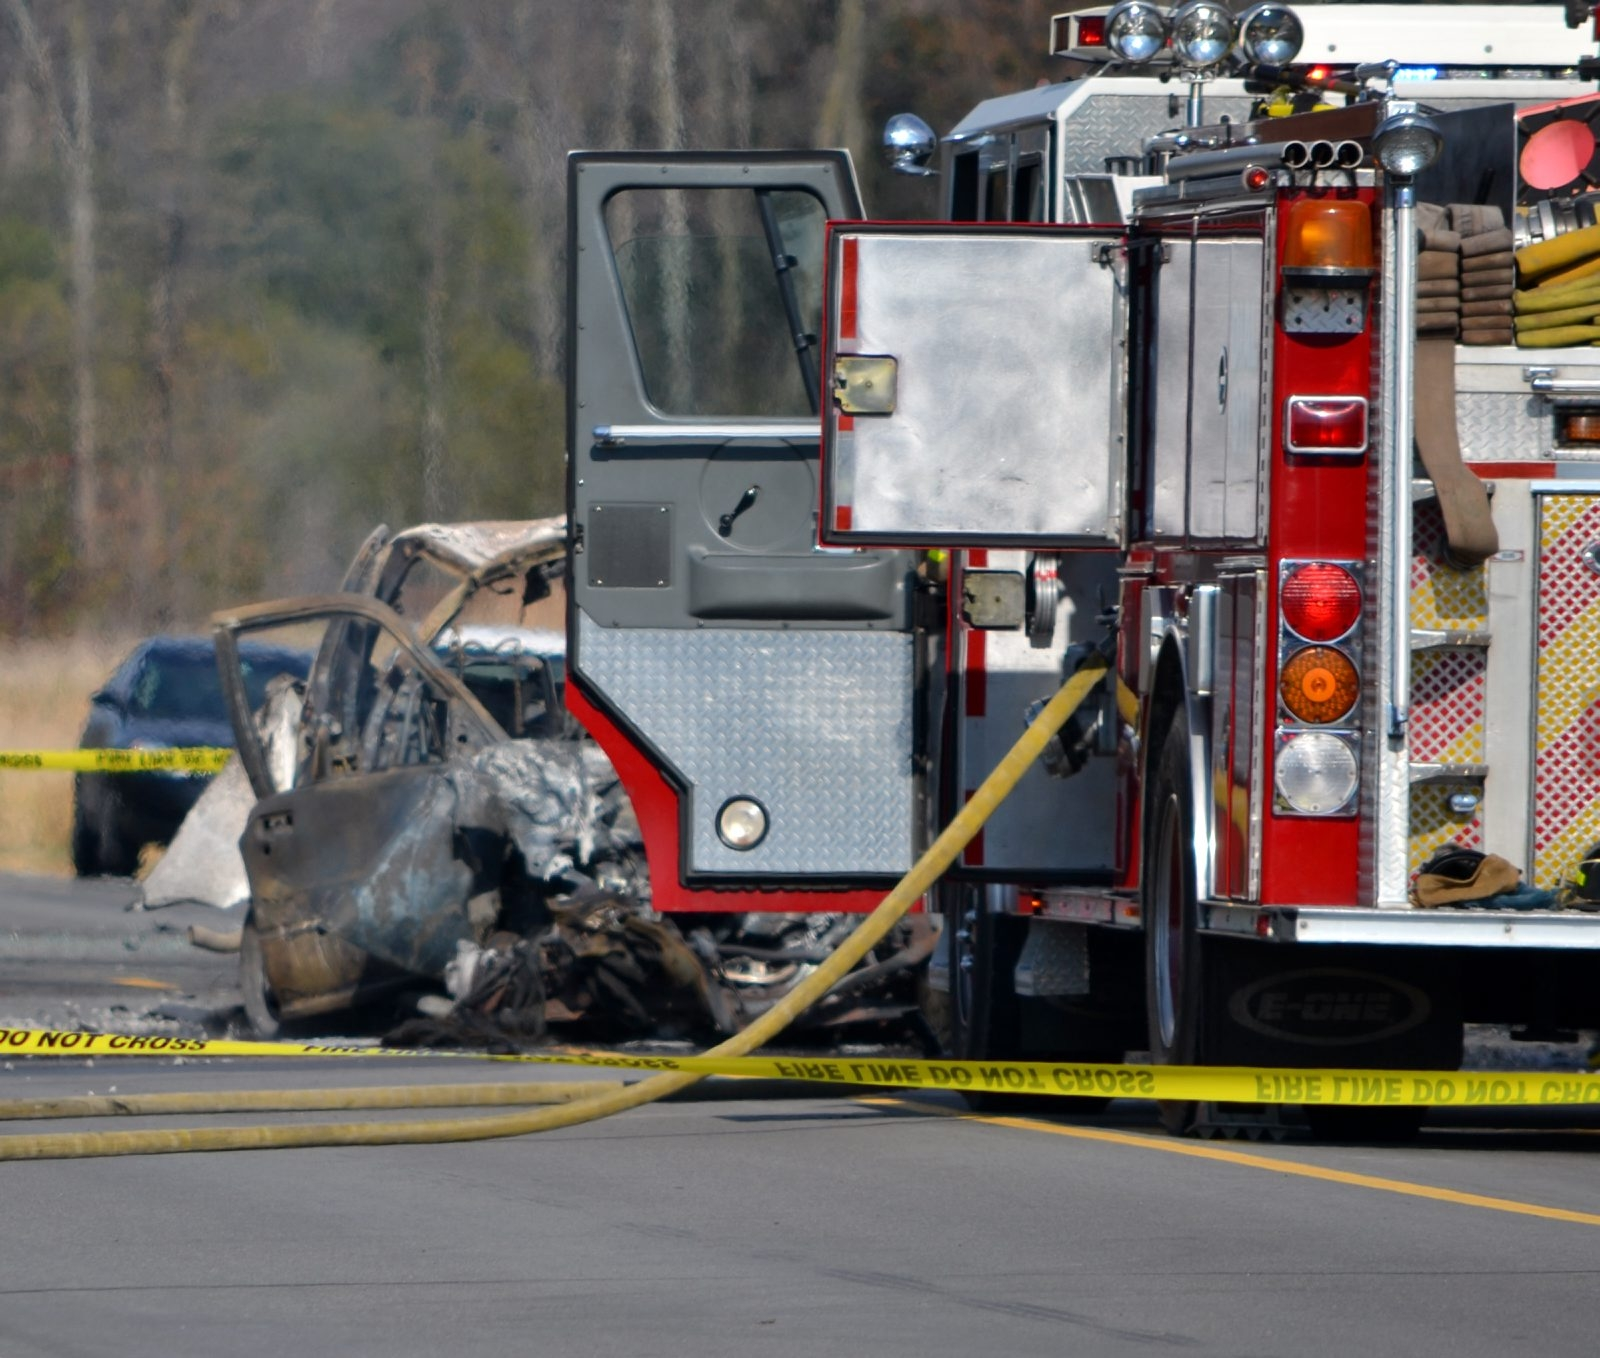 The scene of today's fatal crash in Lockport.